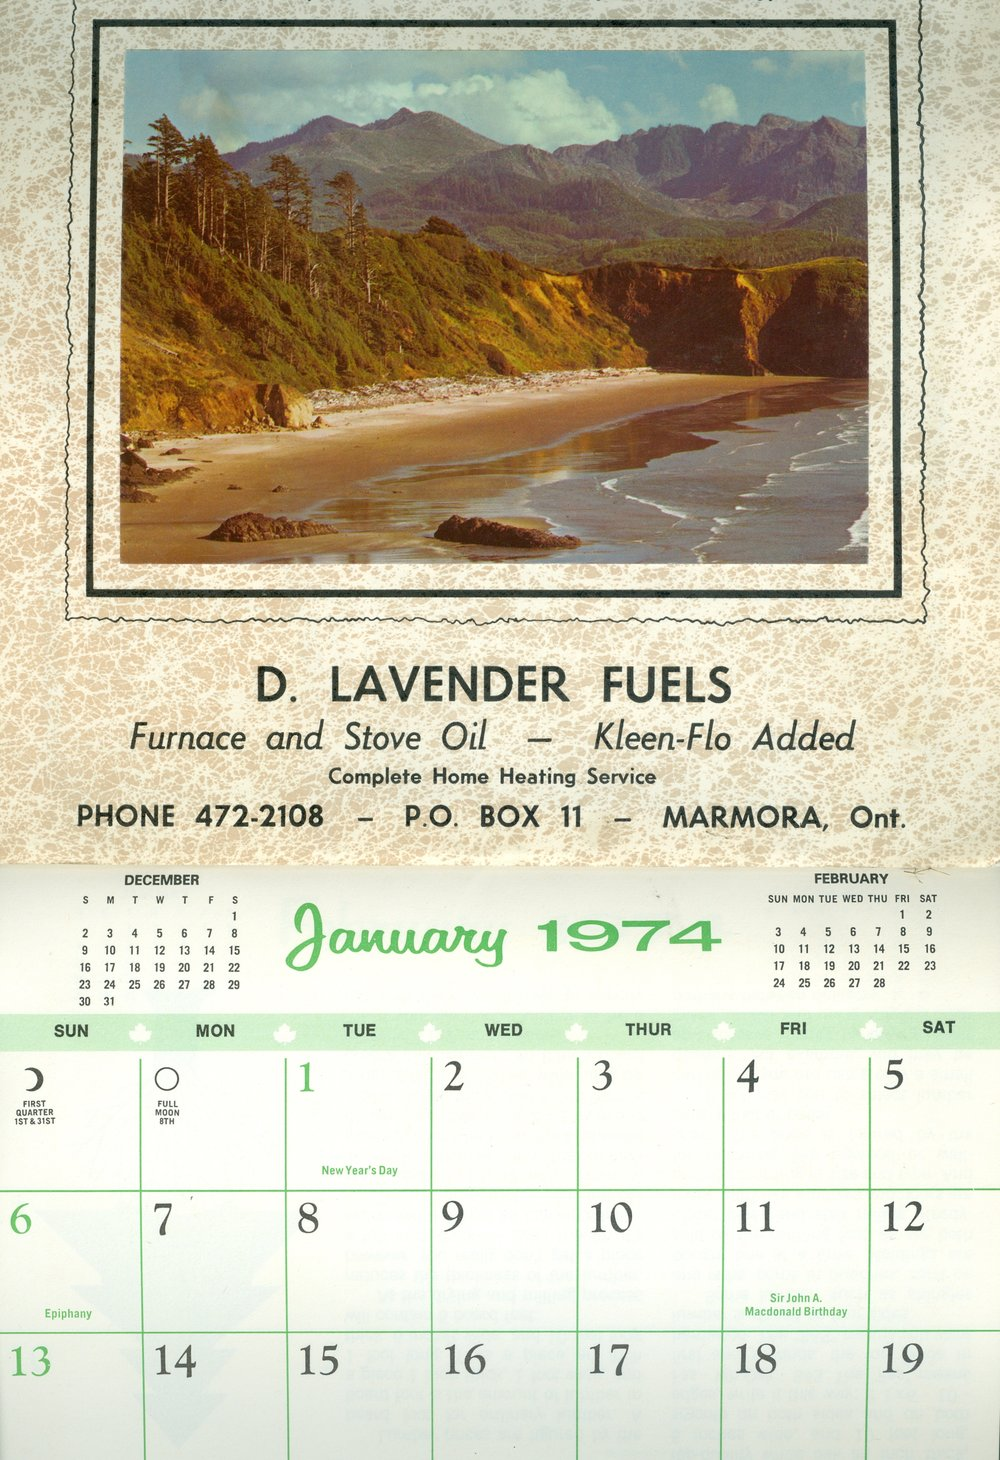 Marmora Business,  D. Lavender Fuels, 1974.jpg